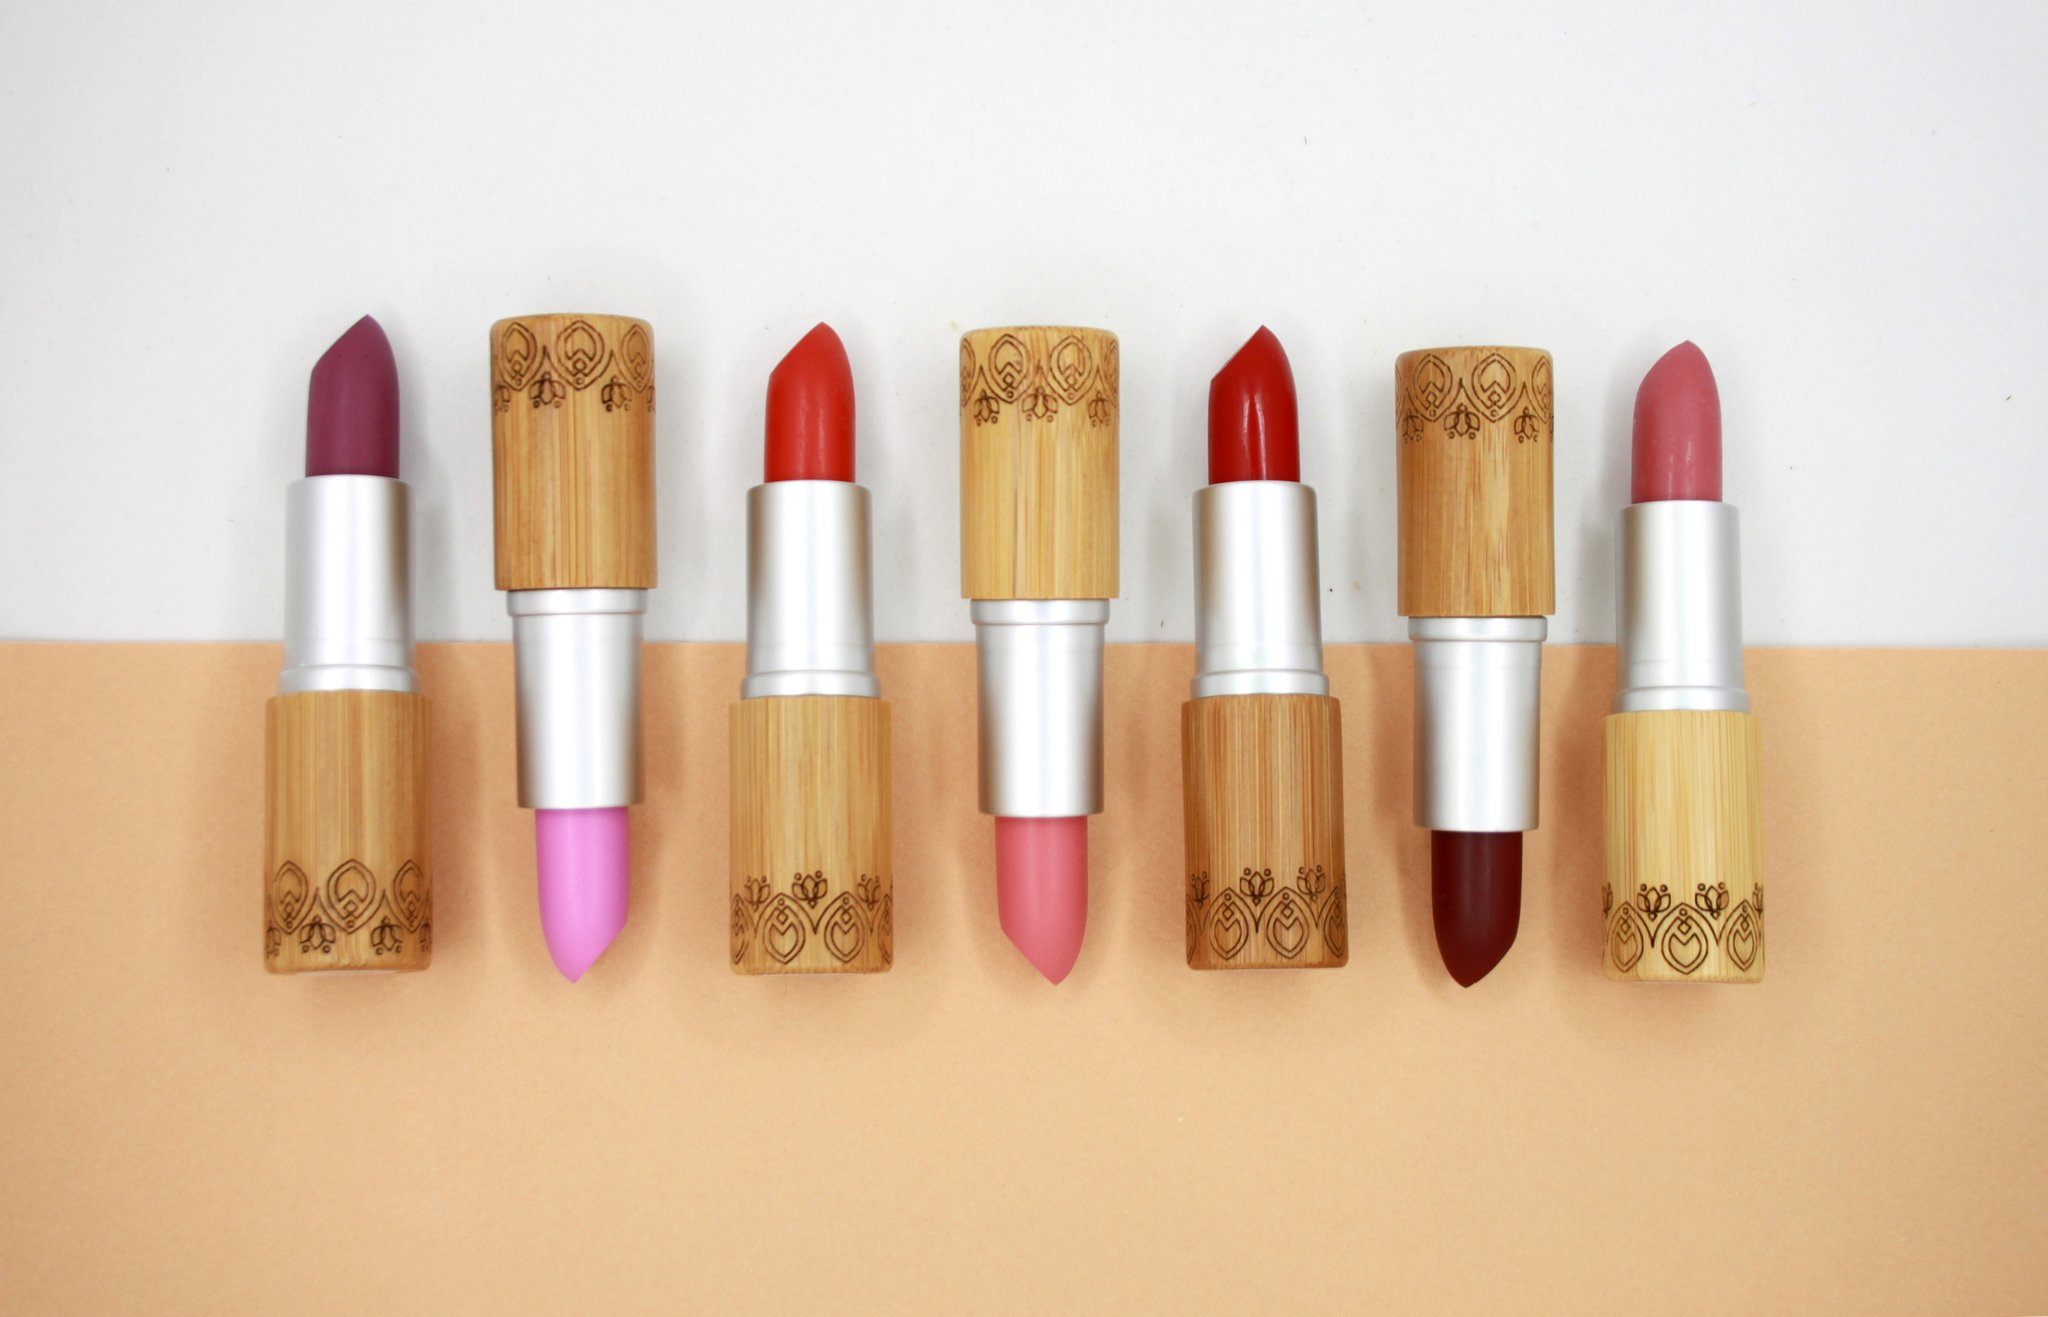 Plastic free cosmetics - Elate are packaged in bamboo and recyclable metal containers.